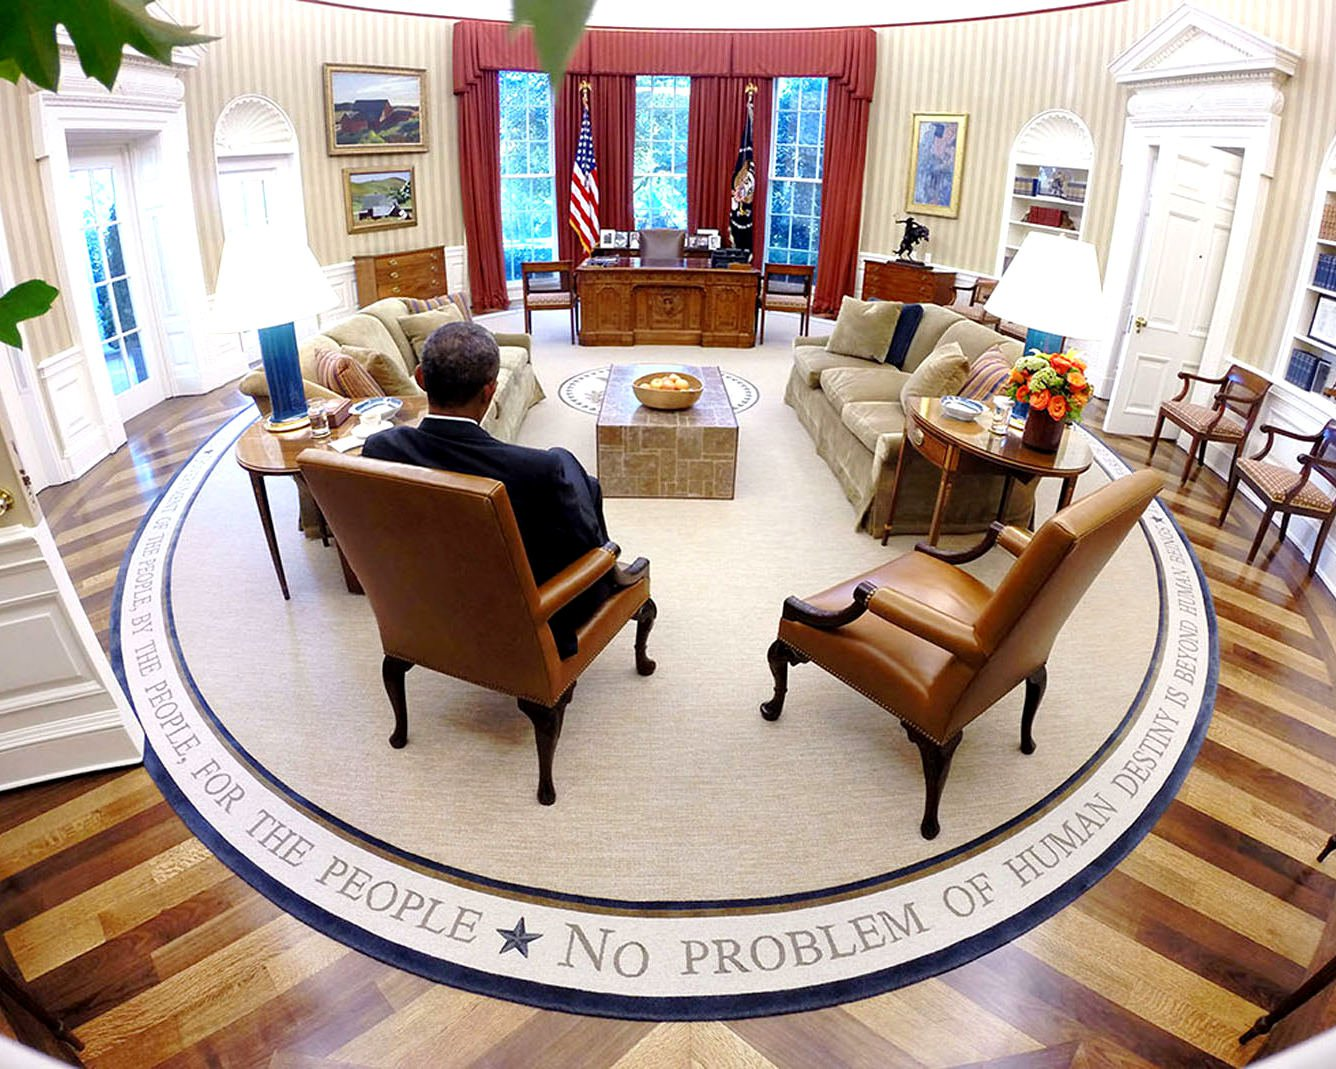 BARACK OBAMA READS BRIEFING MATERIAL IN THE OVAL OFFICE - 8X10 PHOTO (ZZ-594)